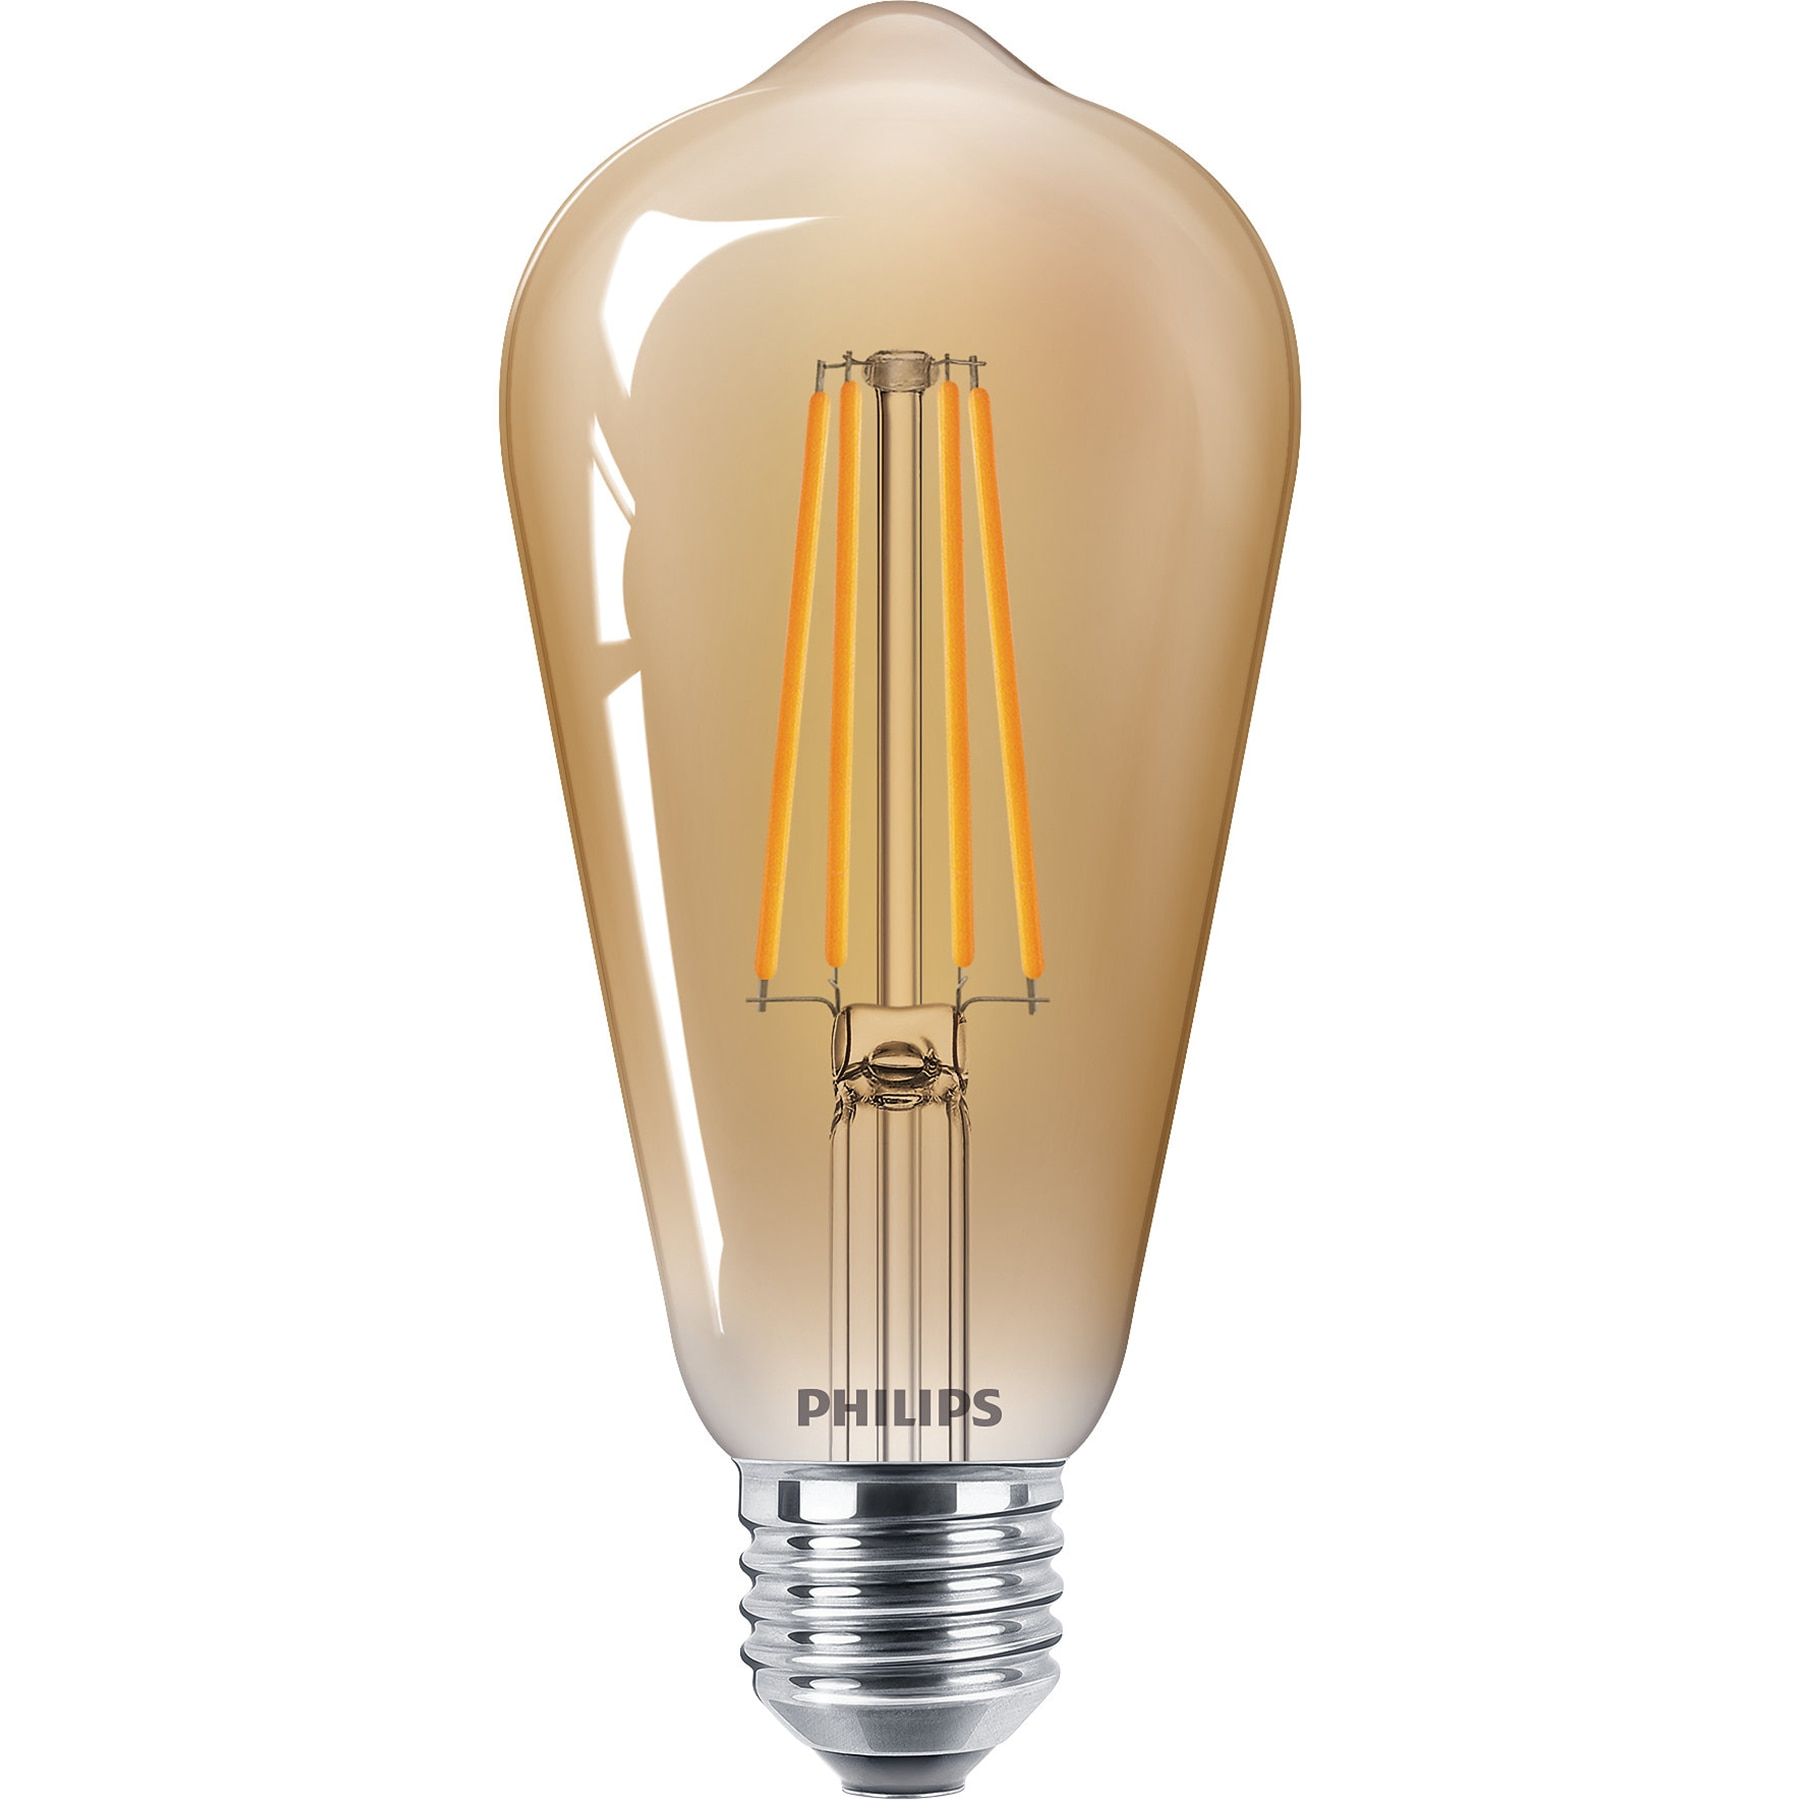 Fotografie Bec LED vintage Philips Classic, E27, 5.5W (48W), 600 lm, 2500K, flacara, Gold